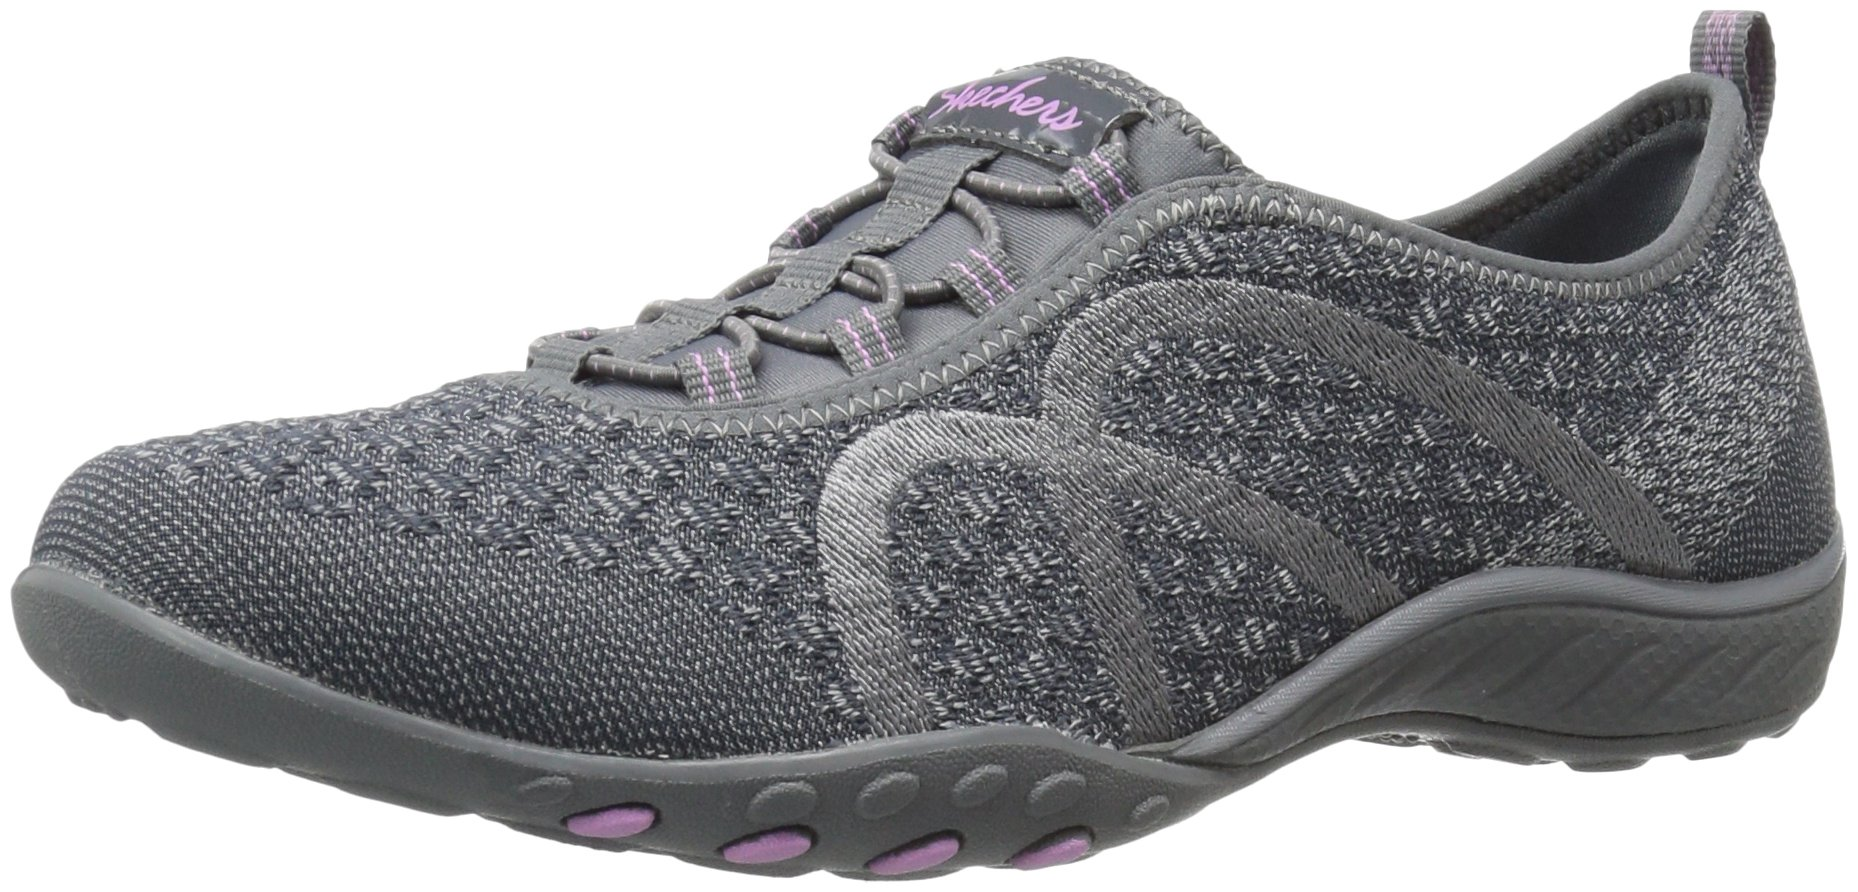 Skechers Sport Women's Breathe Easy Fortune Fashion Sneaker,Charcoal Knit,5 M US